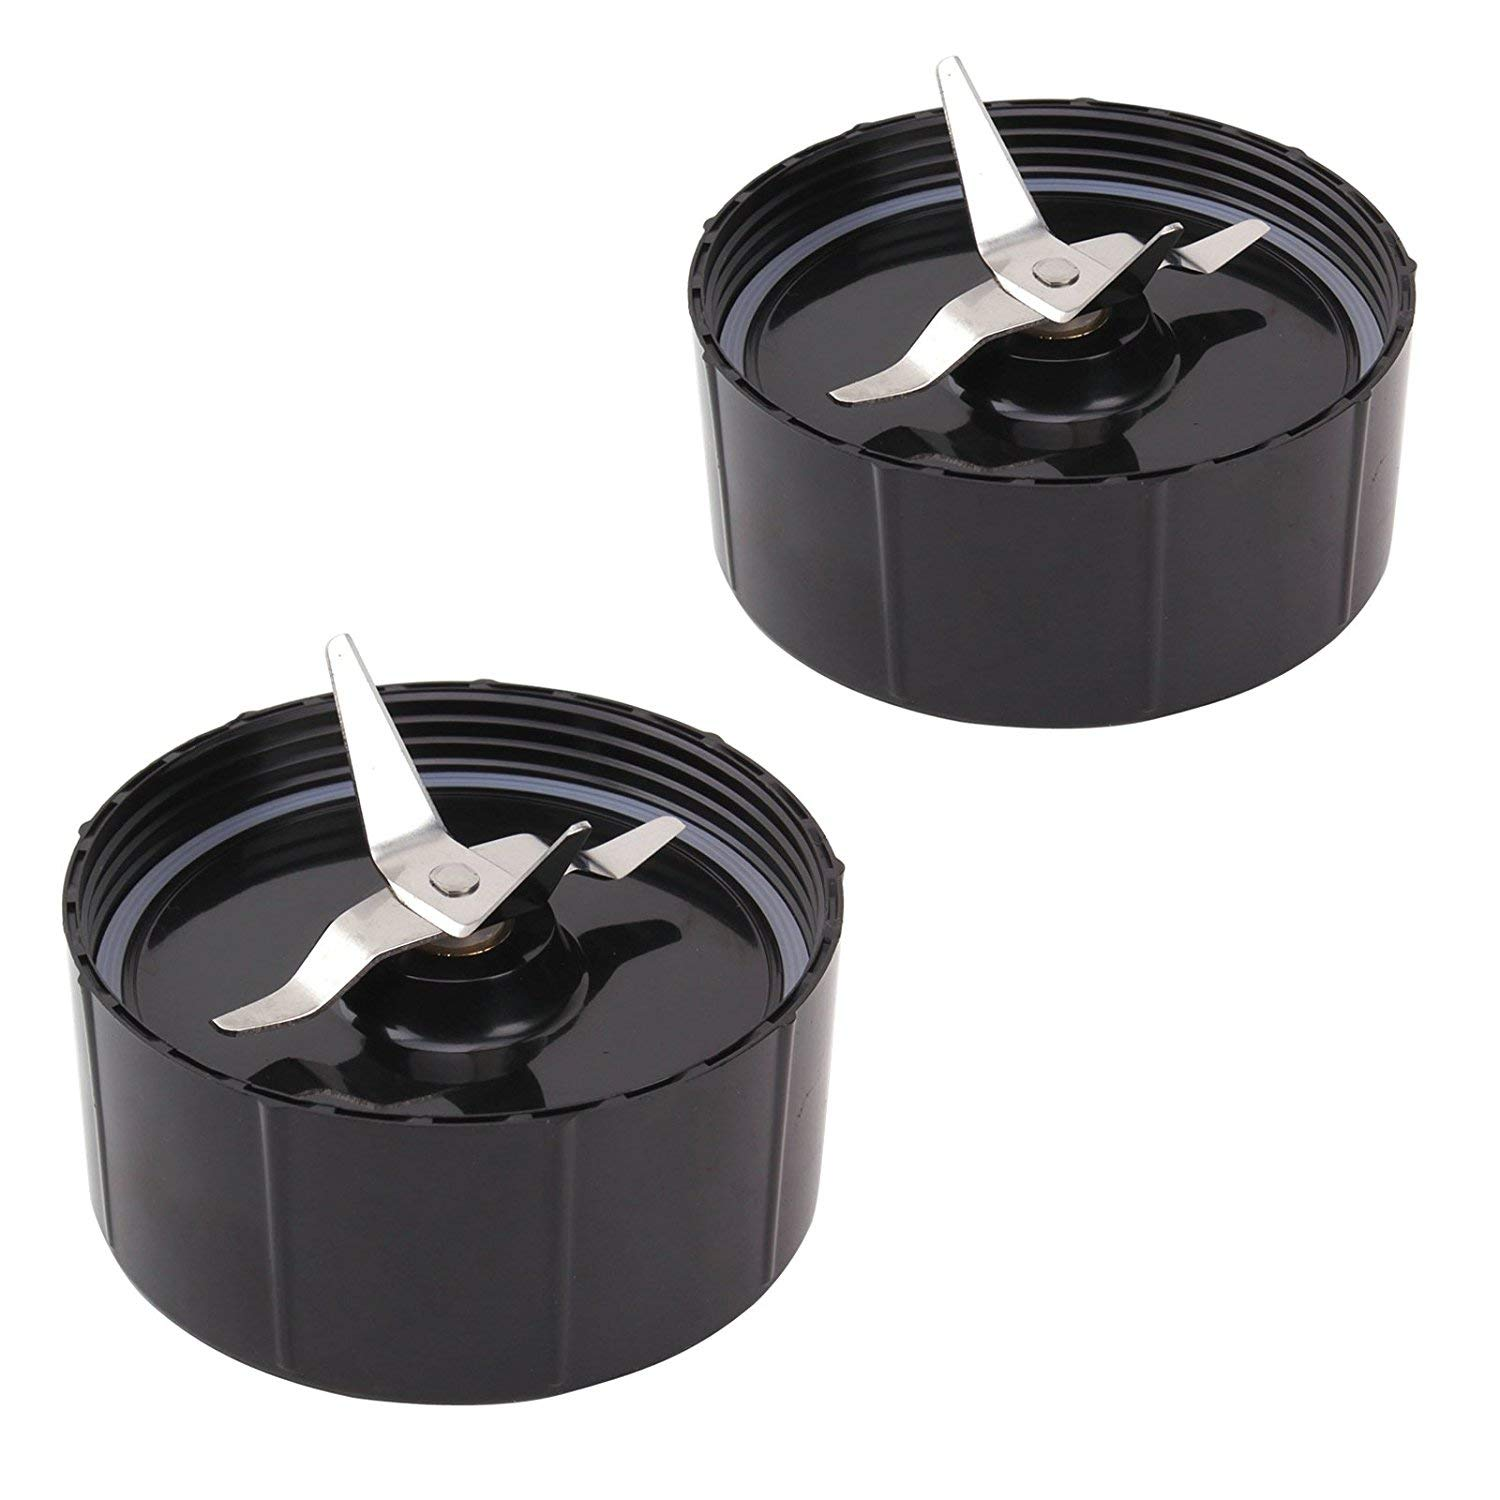 """Science Purchase 78BW2401411- Pack of 2 Replacement Cross Blades for Original Magic Bullet (Model MB1001, 250W) Blender, Juicer, and Mixer, 2.5"""" Height, 4"""" Width, 4"""" Length (Pack of 2)"""